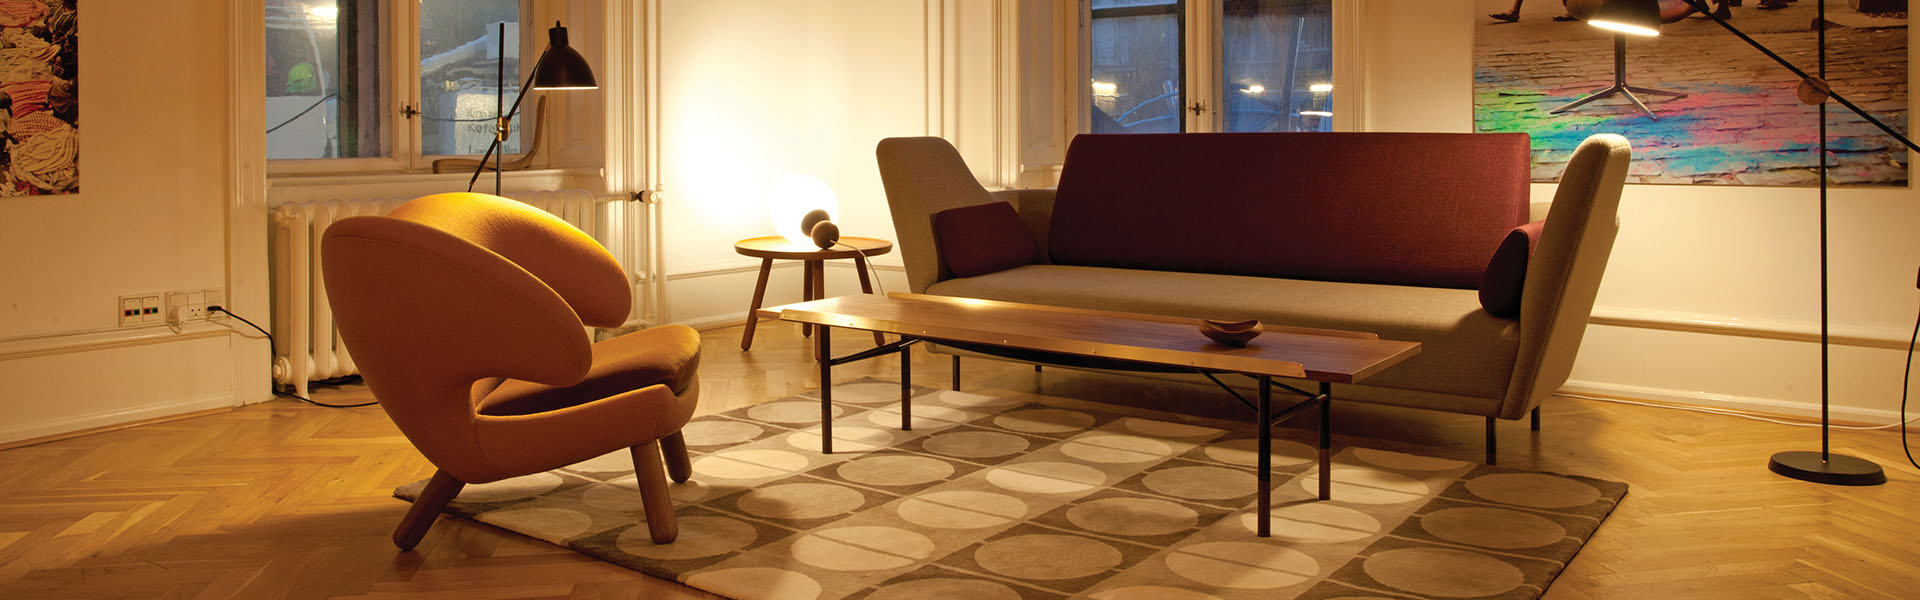 57 Sofa, fabric, Pelican Chair, Table Bench, Circle Rug